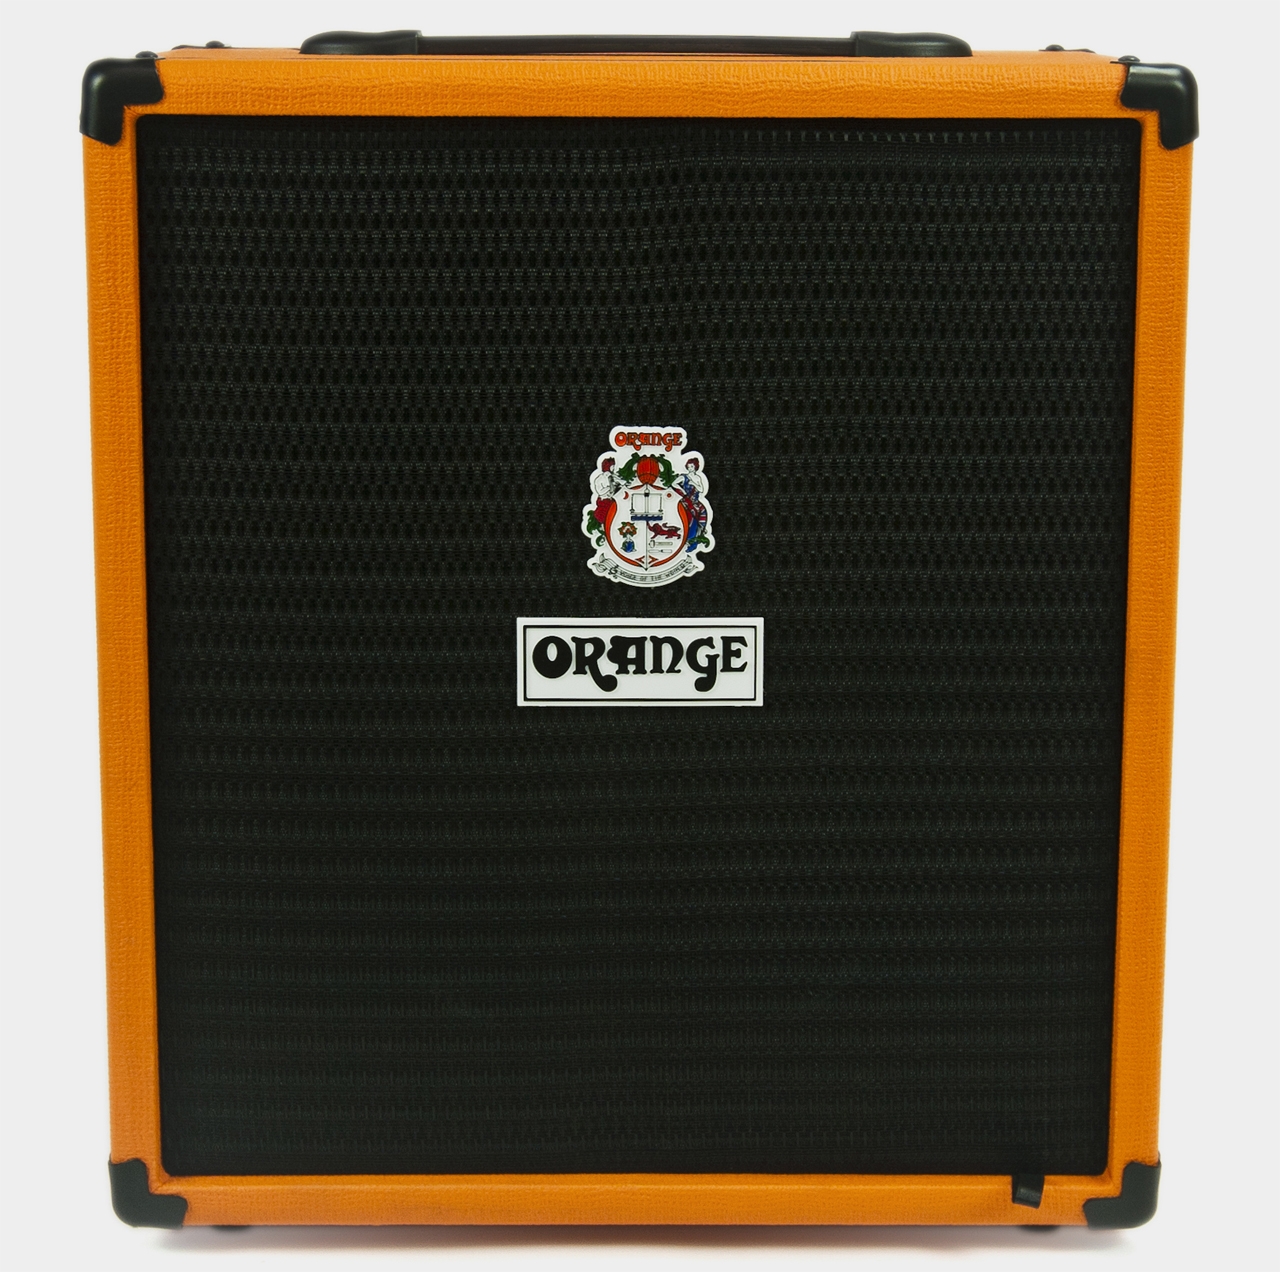 ORANGE CrushPiX CR50BX Front